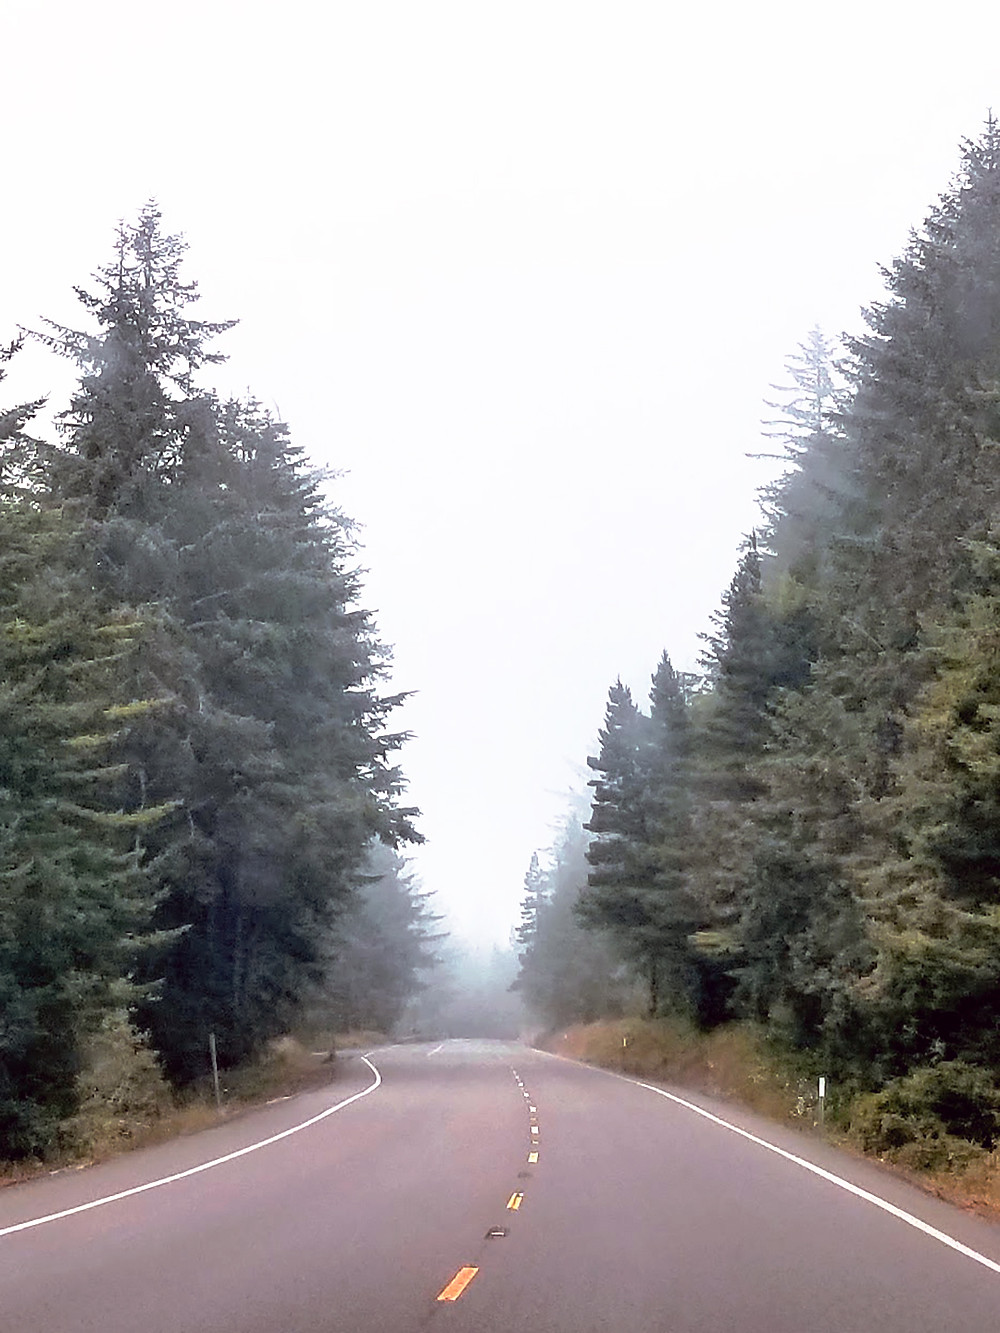 The road to Corvallis